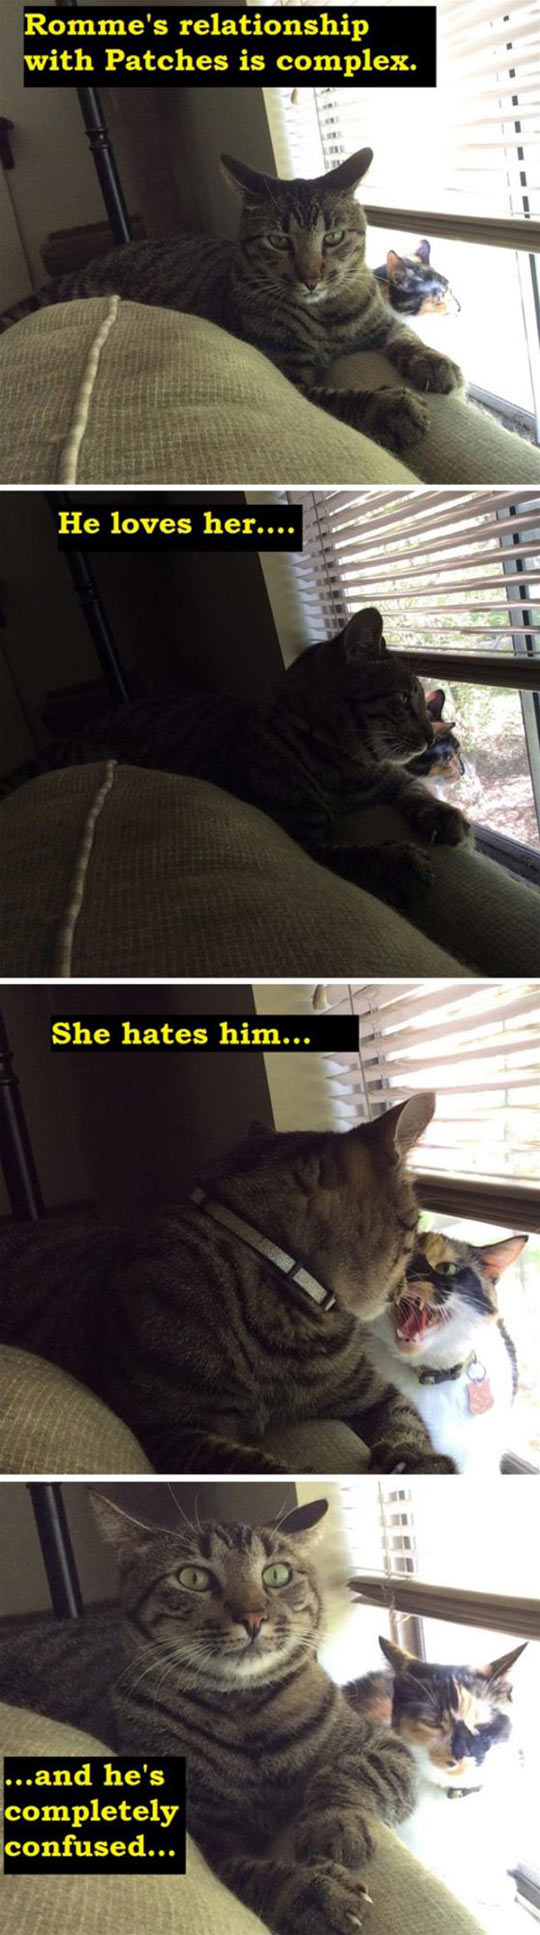 cool-cats-confusing-relationship-love